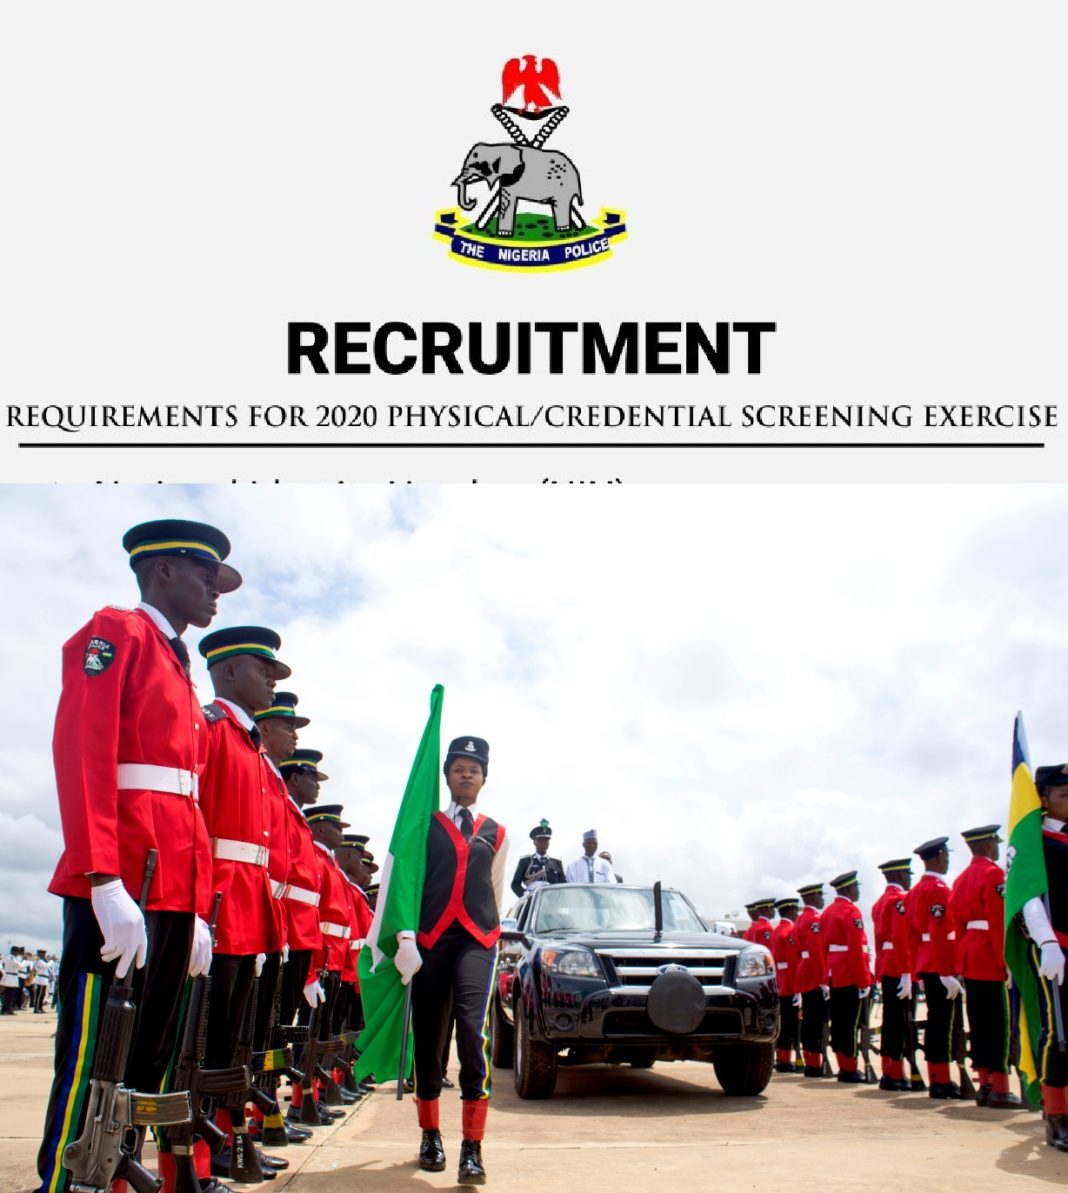 Date and Venues For The Nigeria Police 2020 Recruitment Physical Screening Exercise date and venues for the nigeria police 2020 recruitment physical screening exercise - ZomboDroid 21082020082555 1068x1193 - Date and Venues For The Nigeria Police 2020 Recruitment Physical Screening Exercise